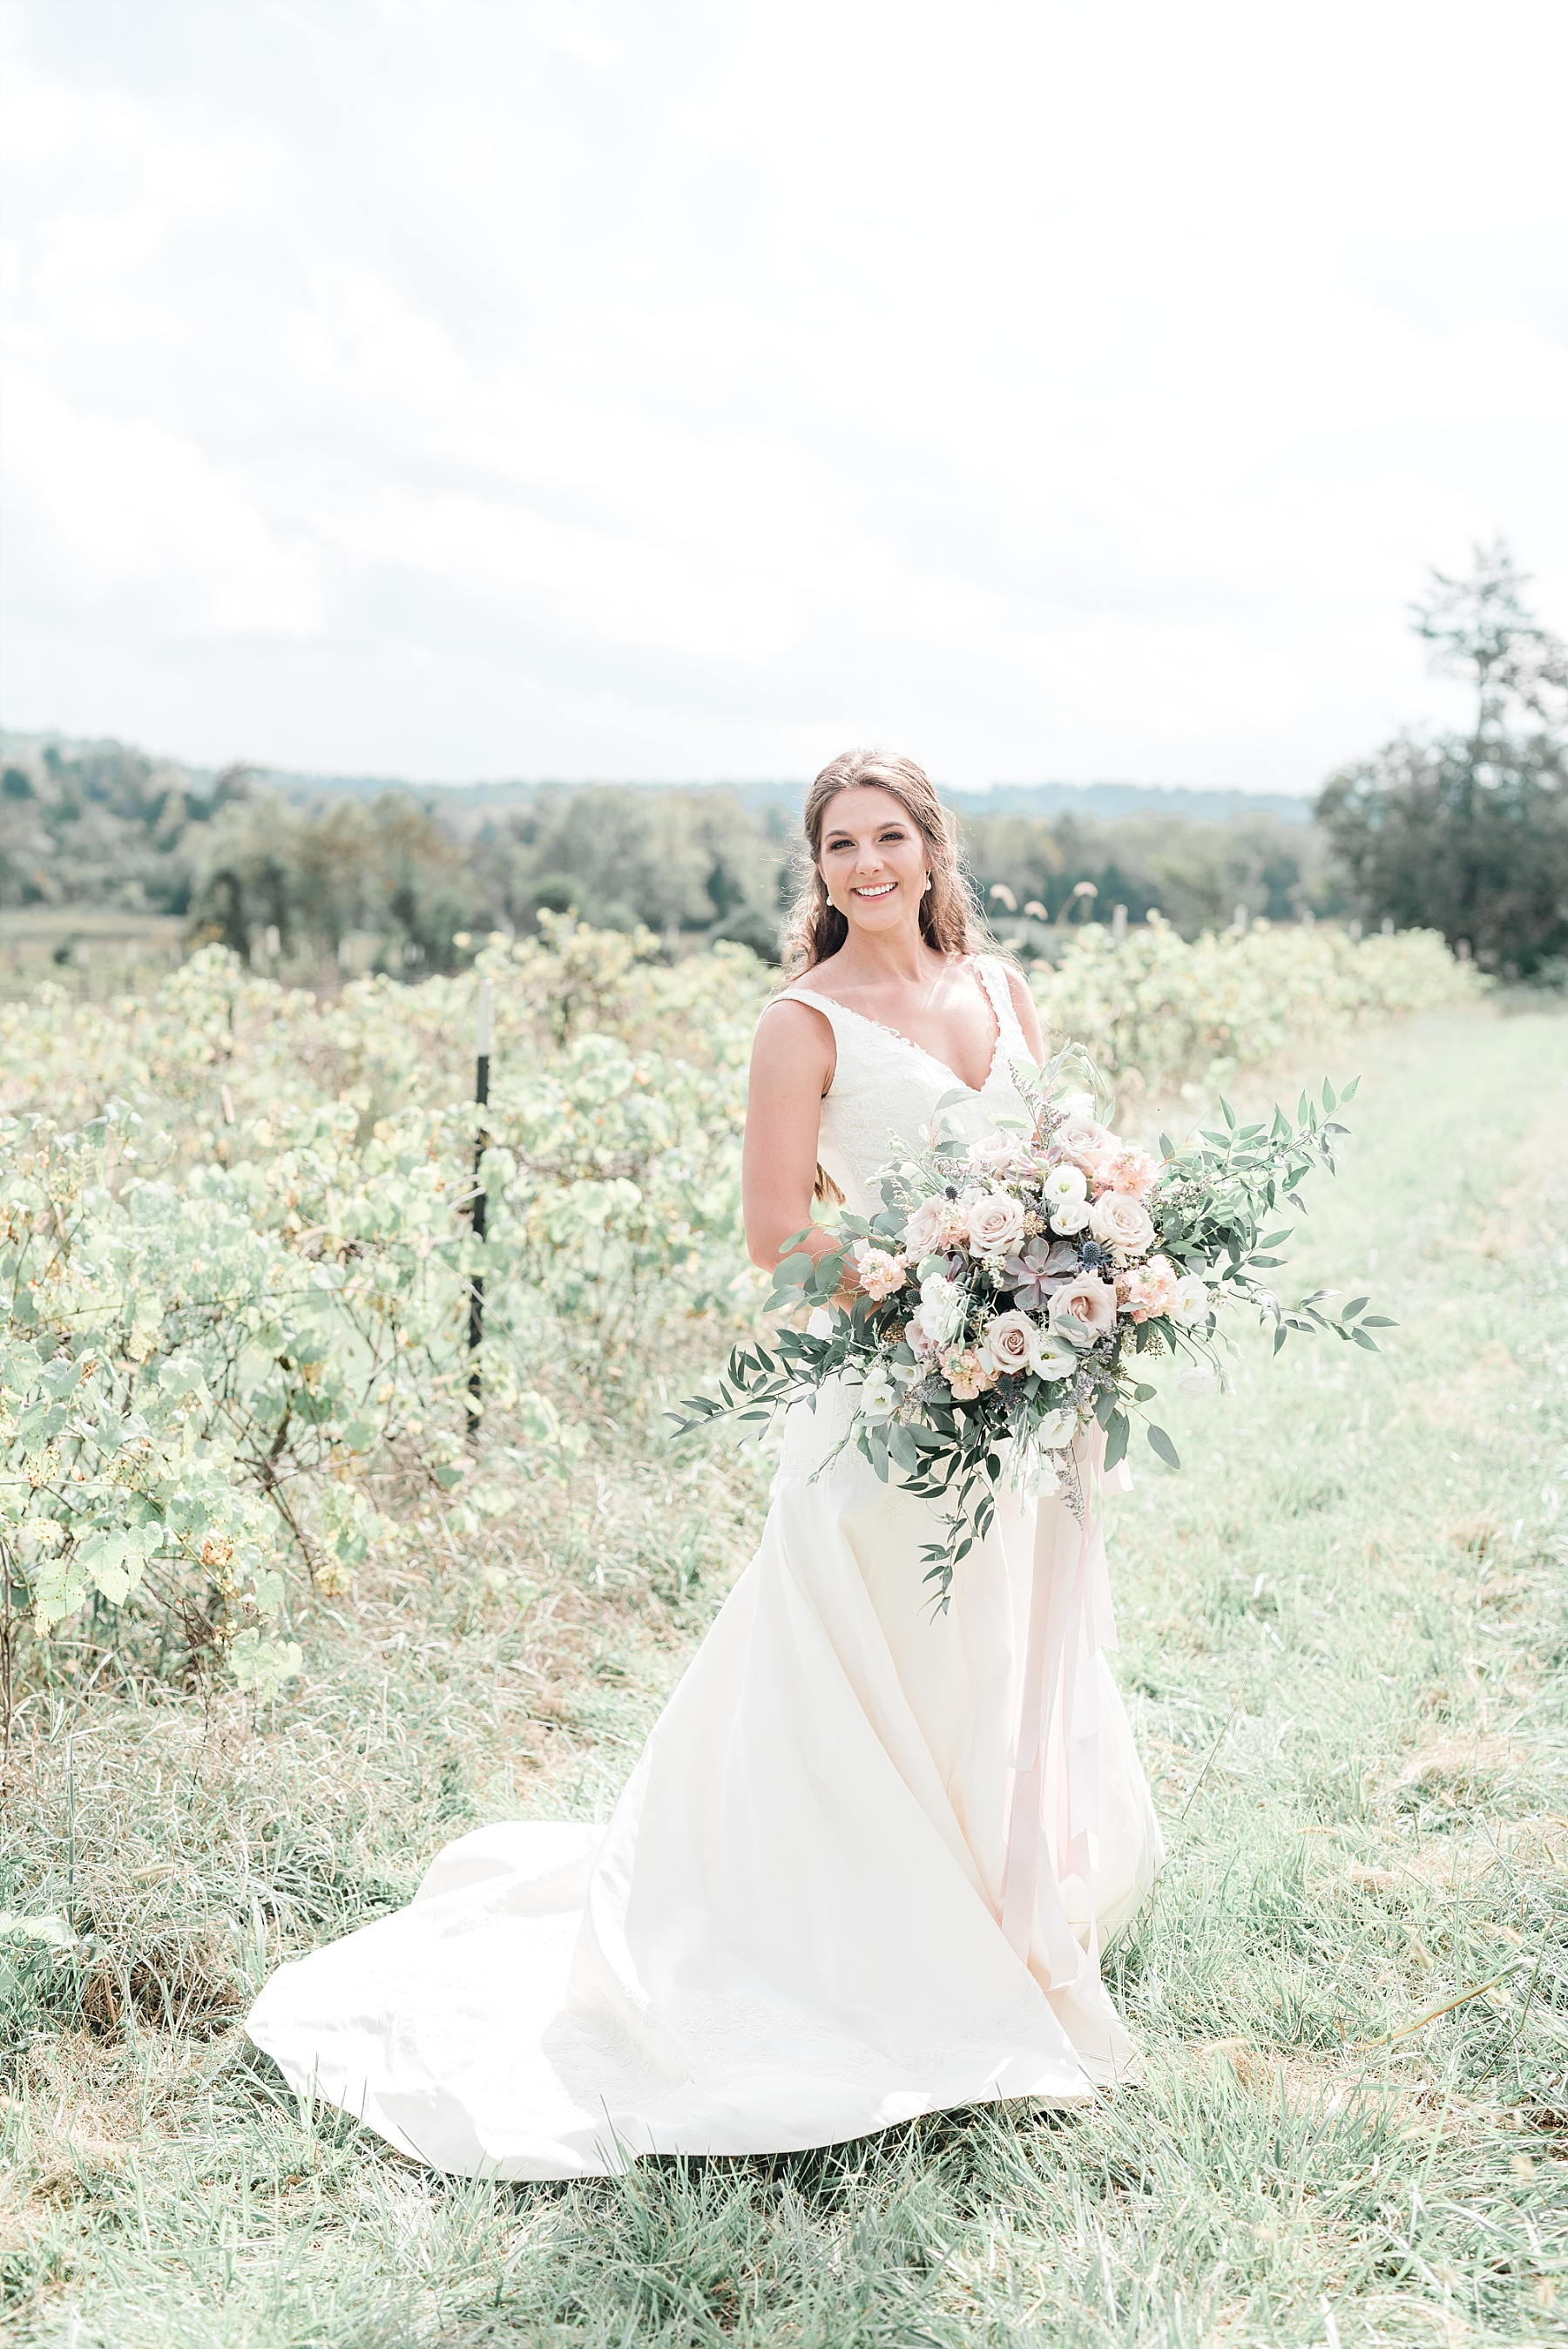 Fine Art Sunset Themed Wedding in Autumn at Dodson Orchards by Kelsi Kliethermes Photography_0042.jpg